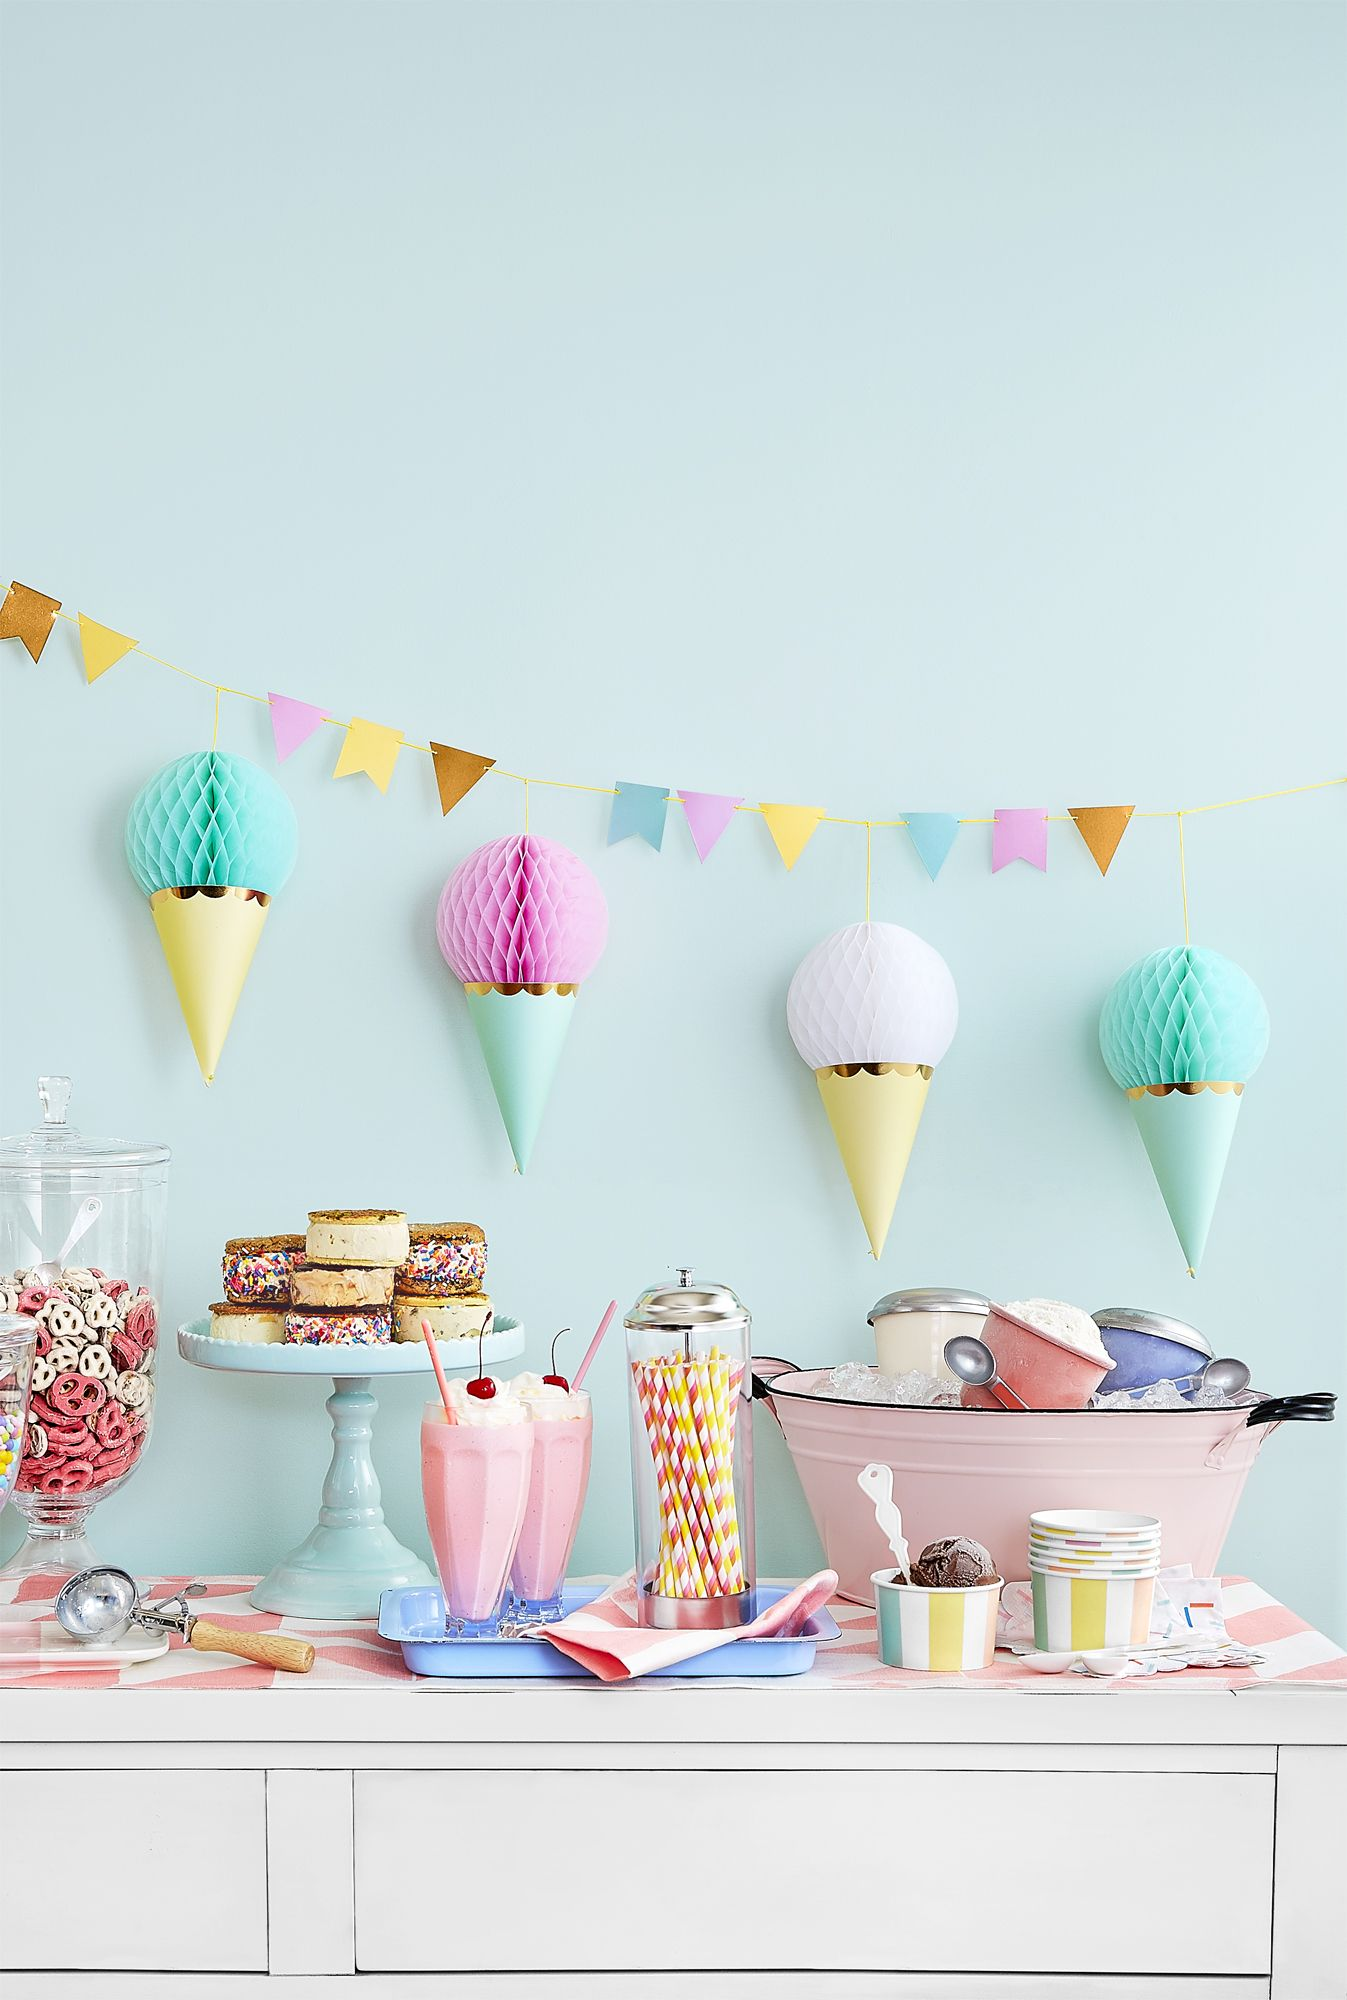 30+ Baby Shower Ideas for Boys and Girls - Baby Shower Food and Decorations